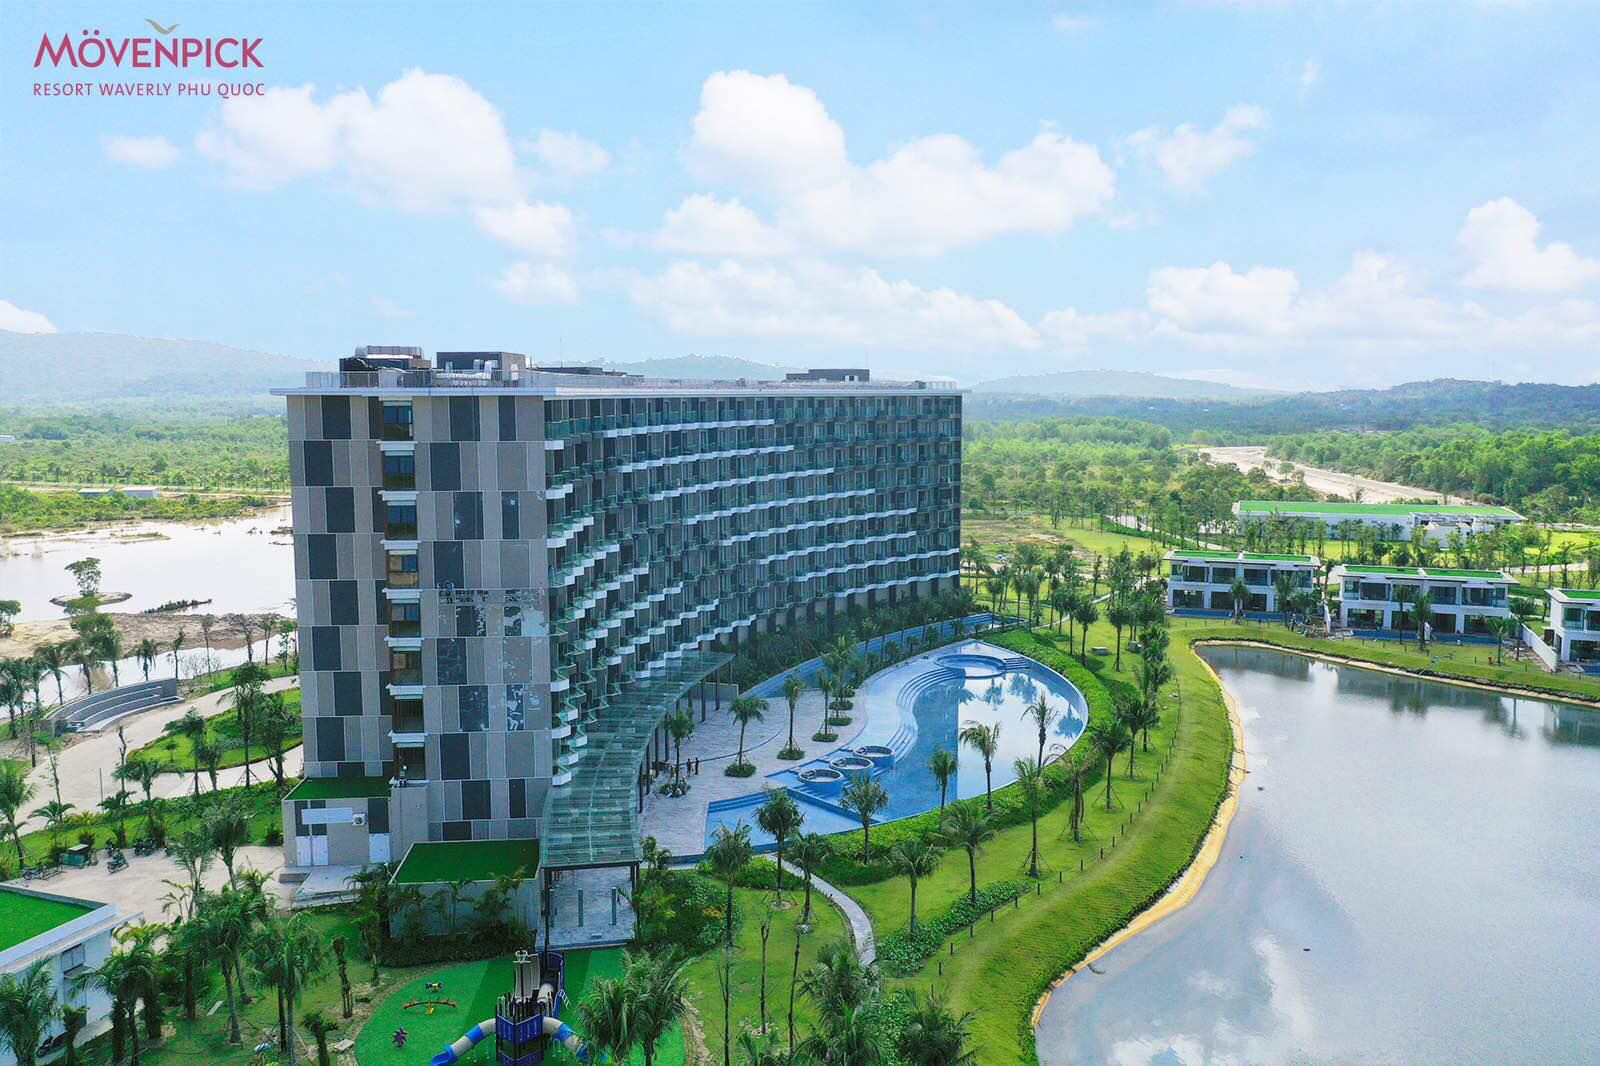 du-an-condotel-movenpick-resort-waverly-phu-quoc